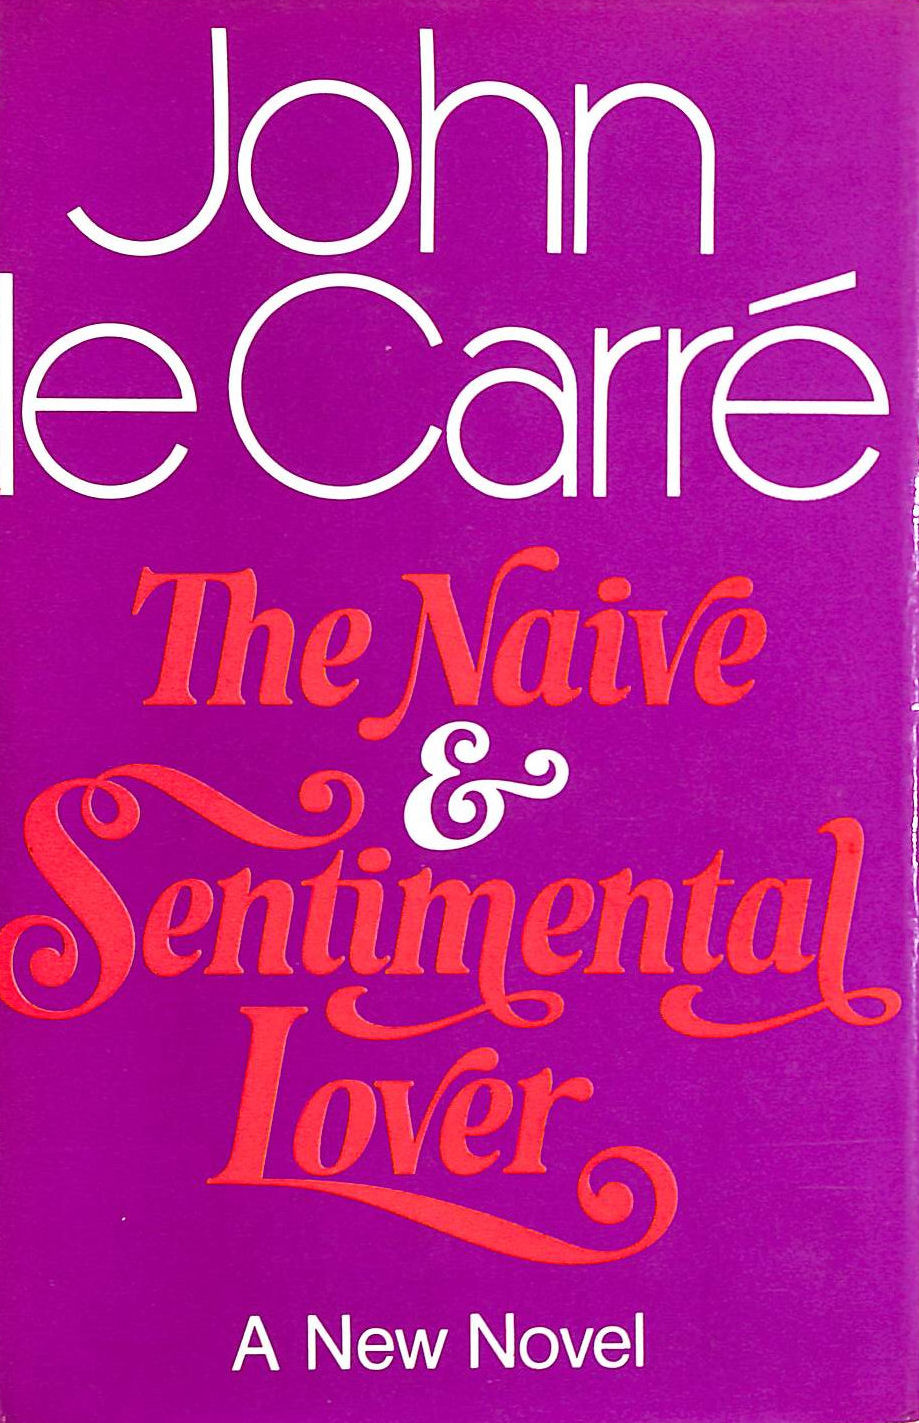 Image for The Naive and Sentimental Lover